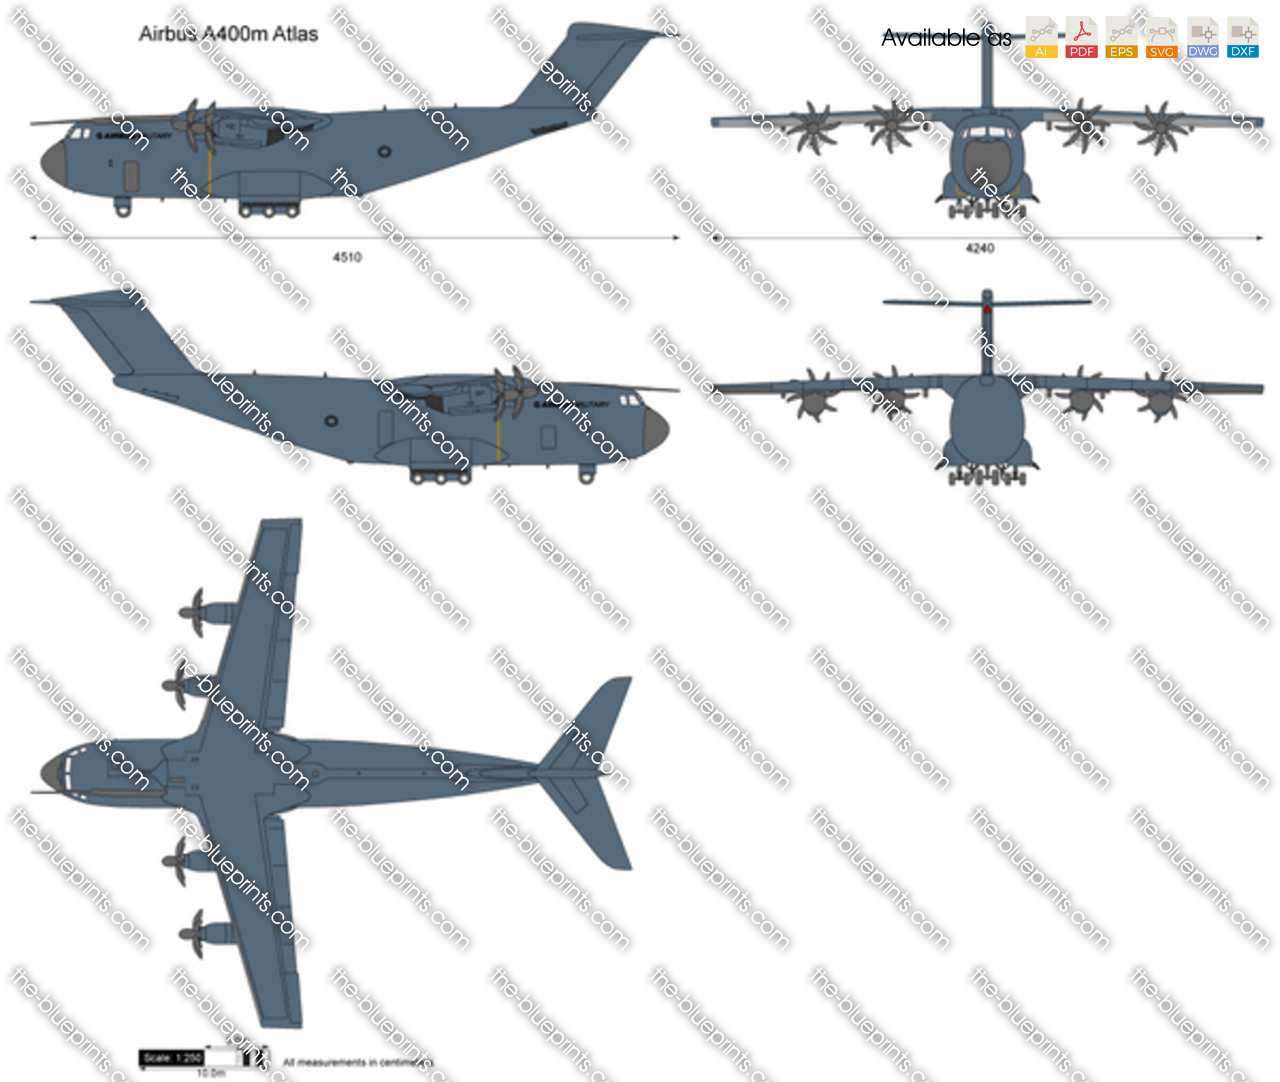 The Vector Drawing Airbus A400m Atlas